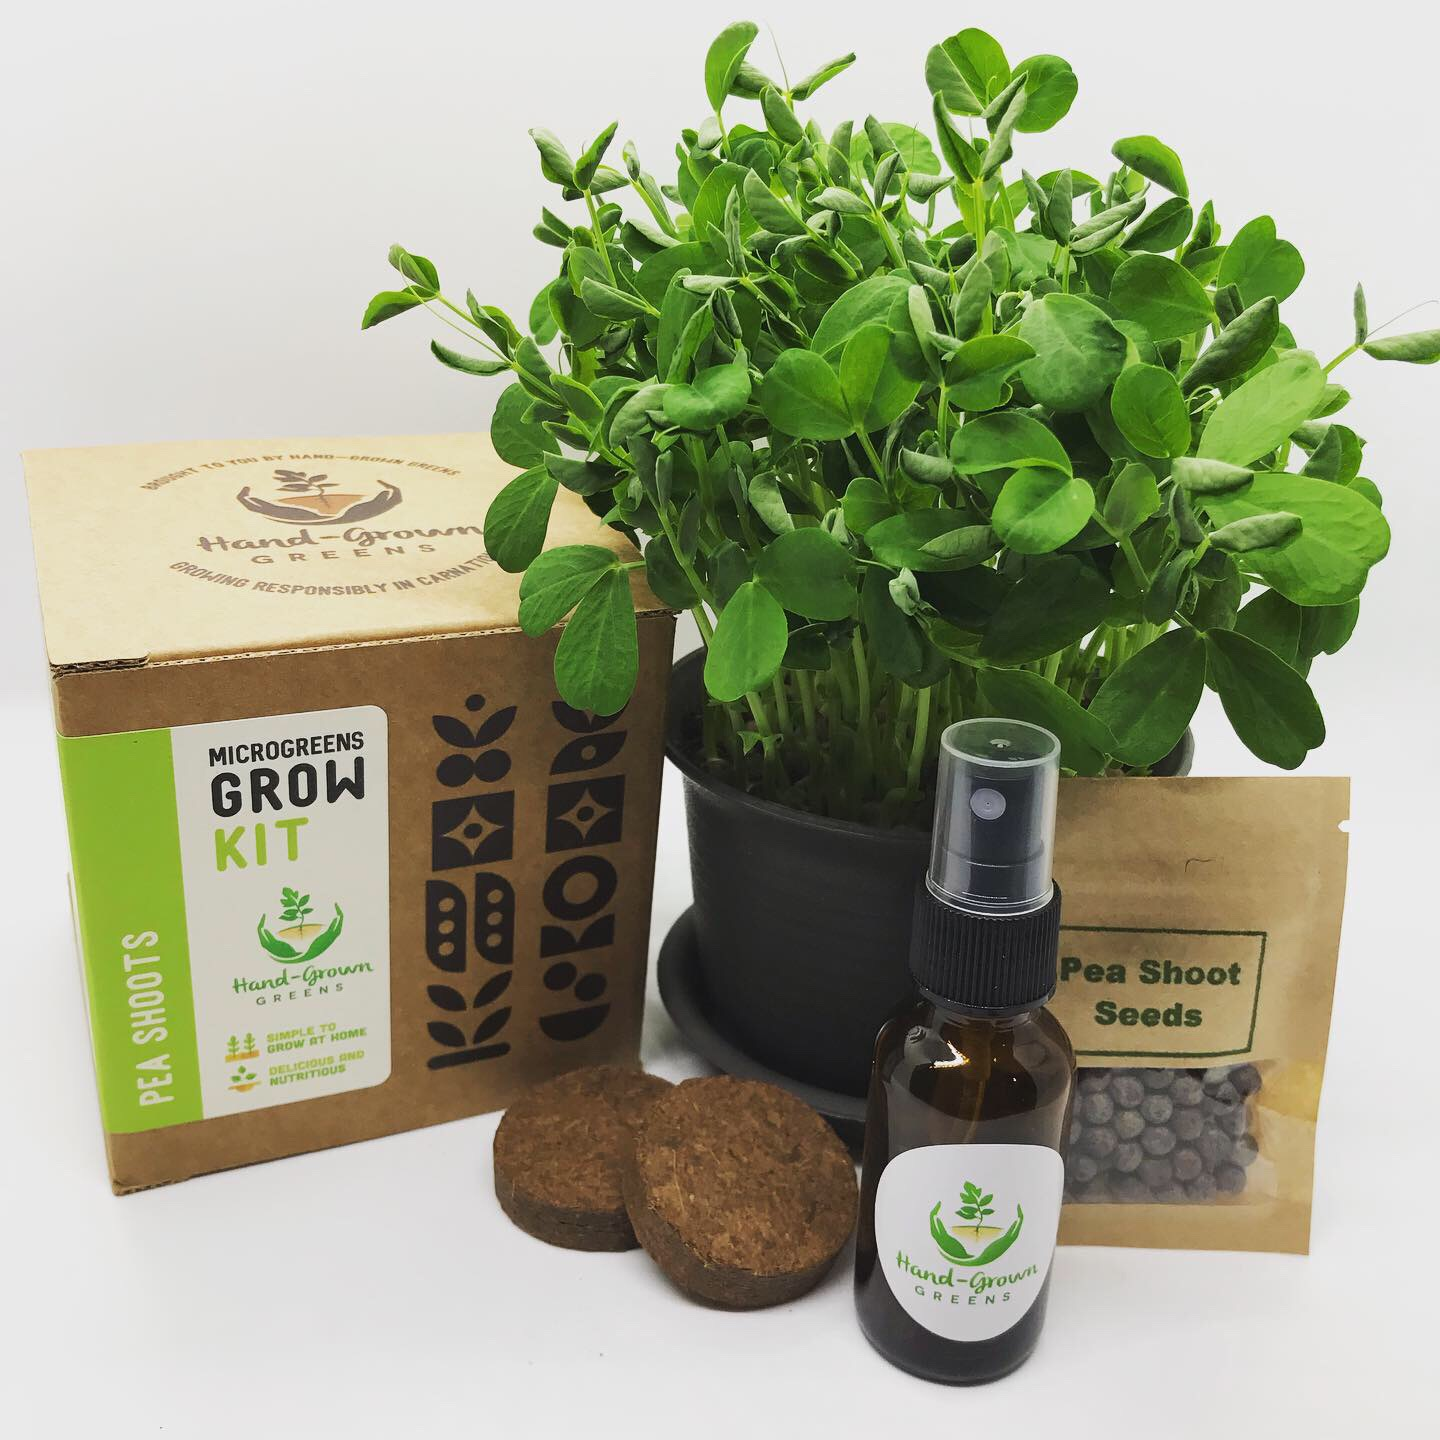 Pea shoots growing kit